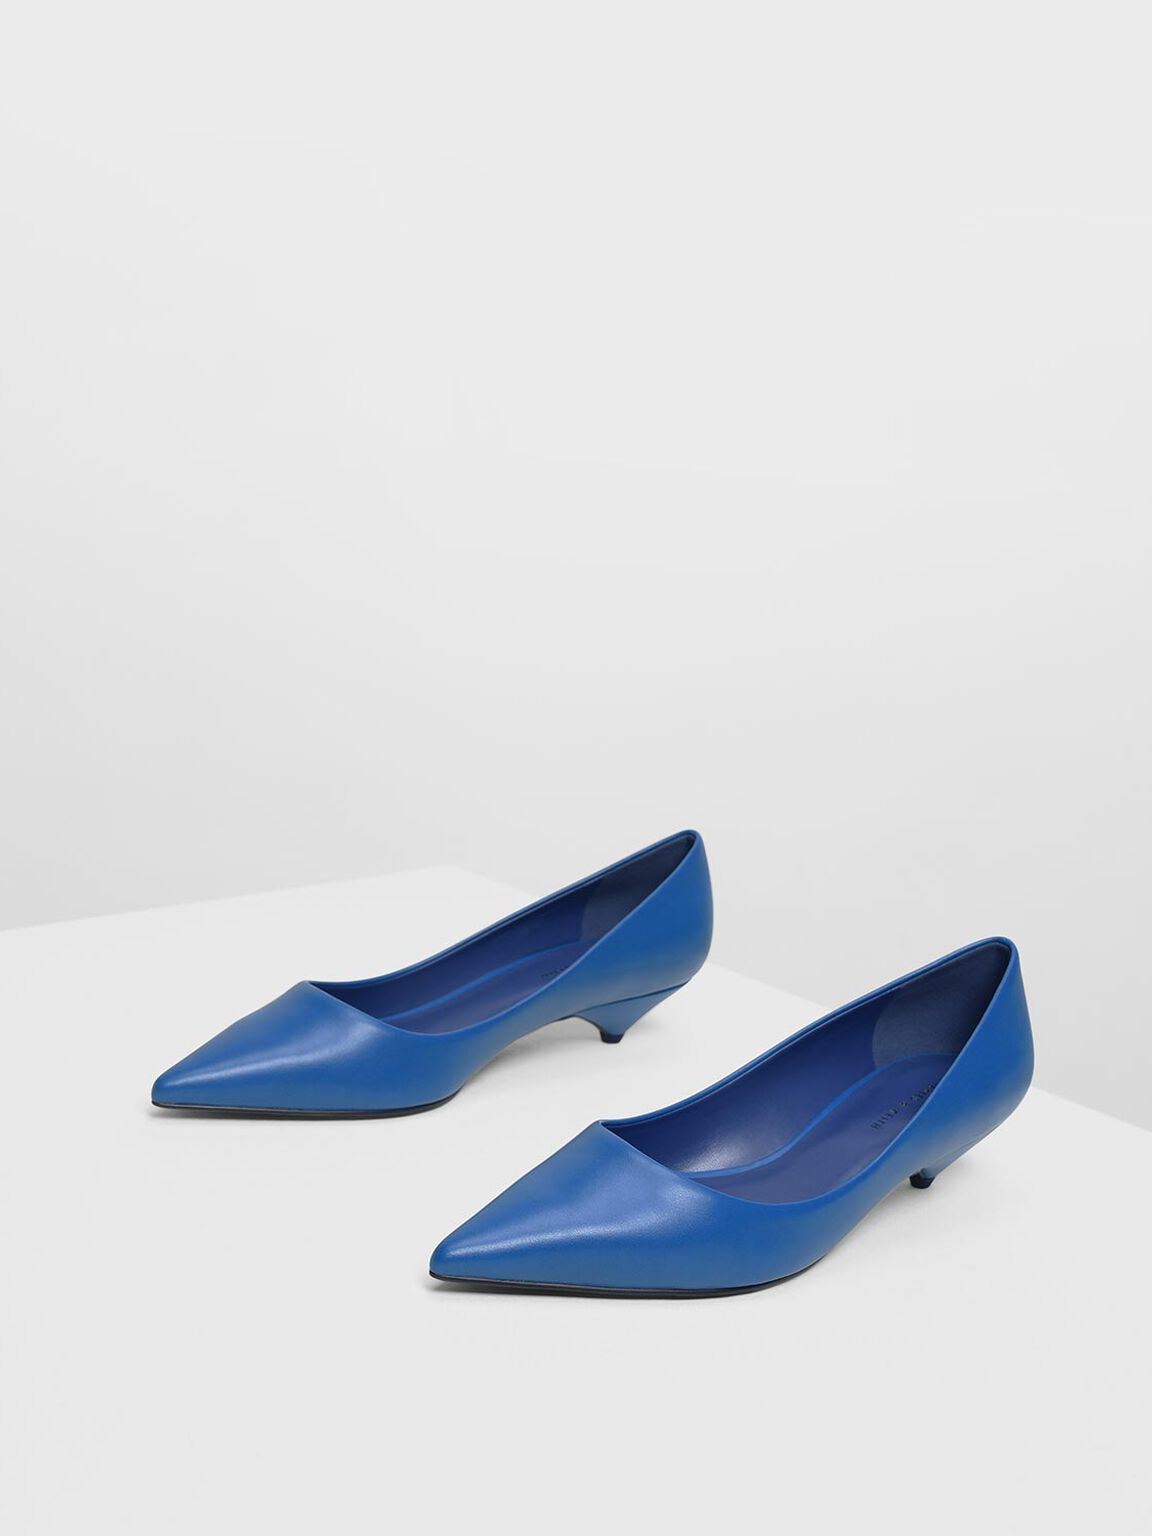 Classic Kitten Heel Pumps, Blue, hi-res